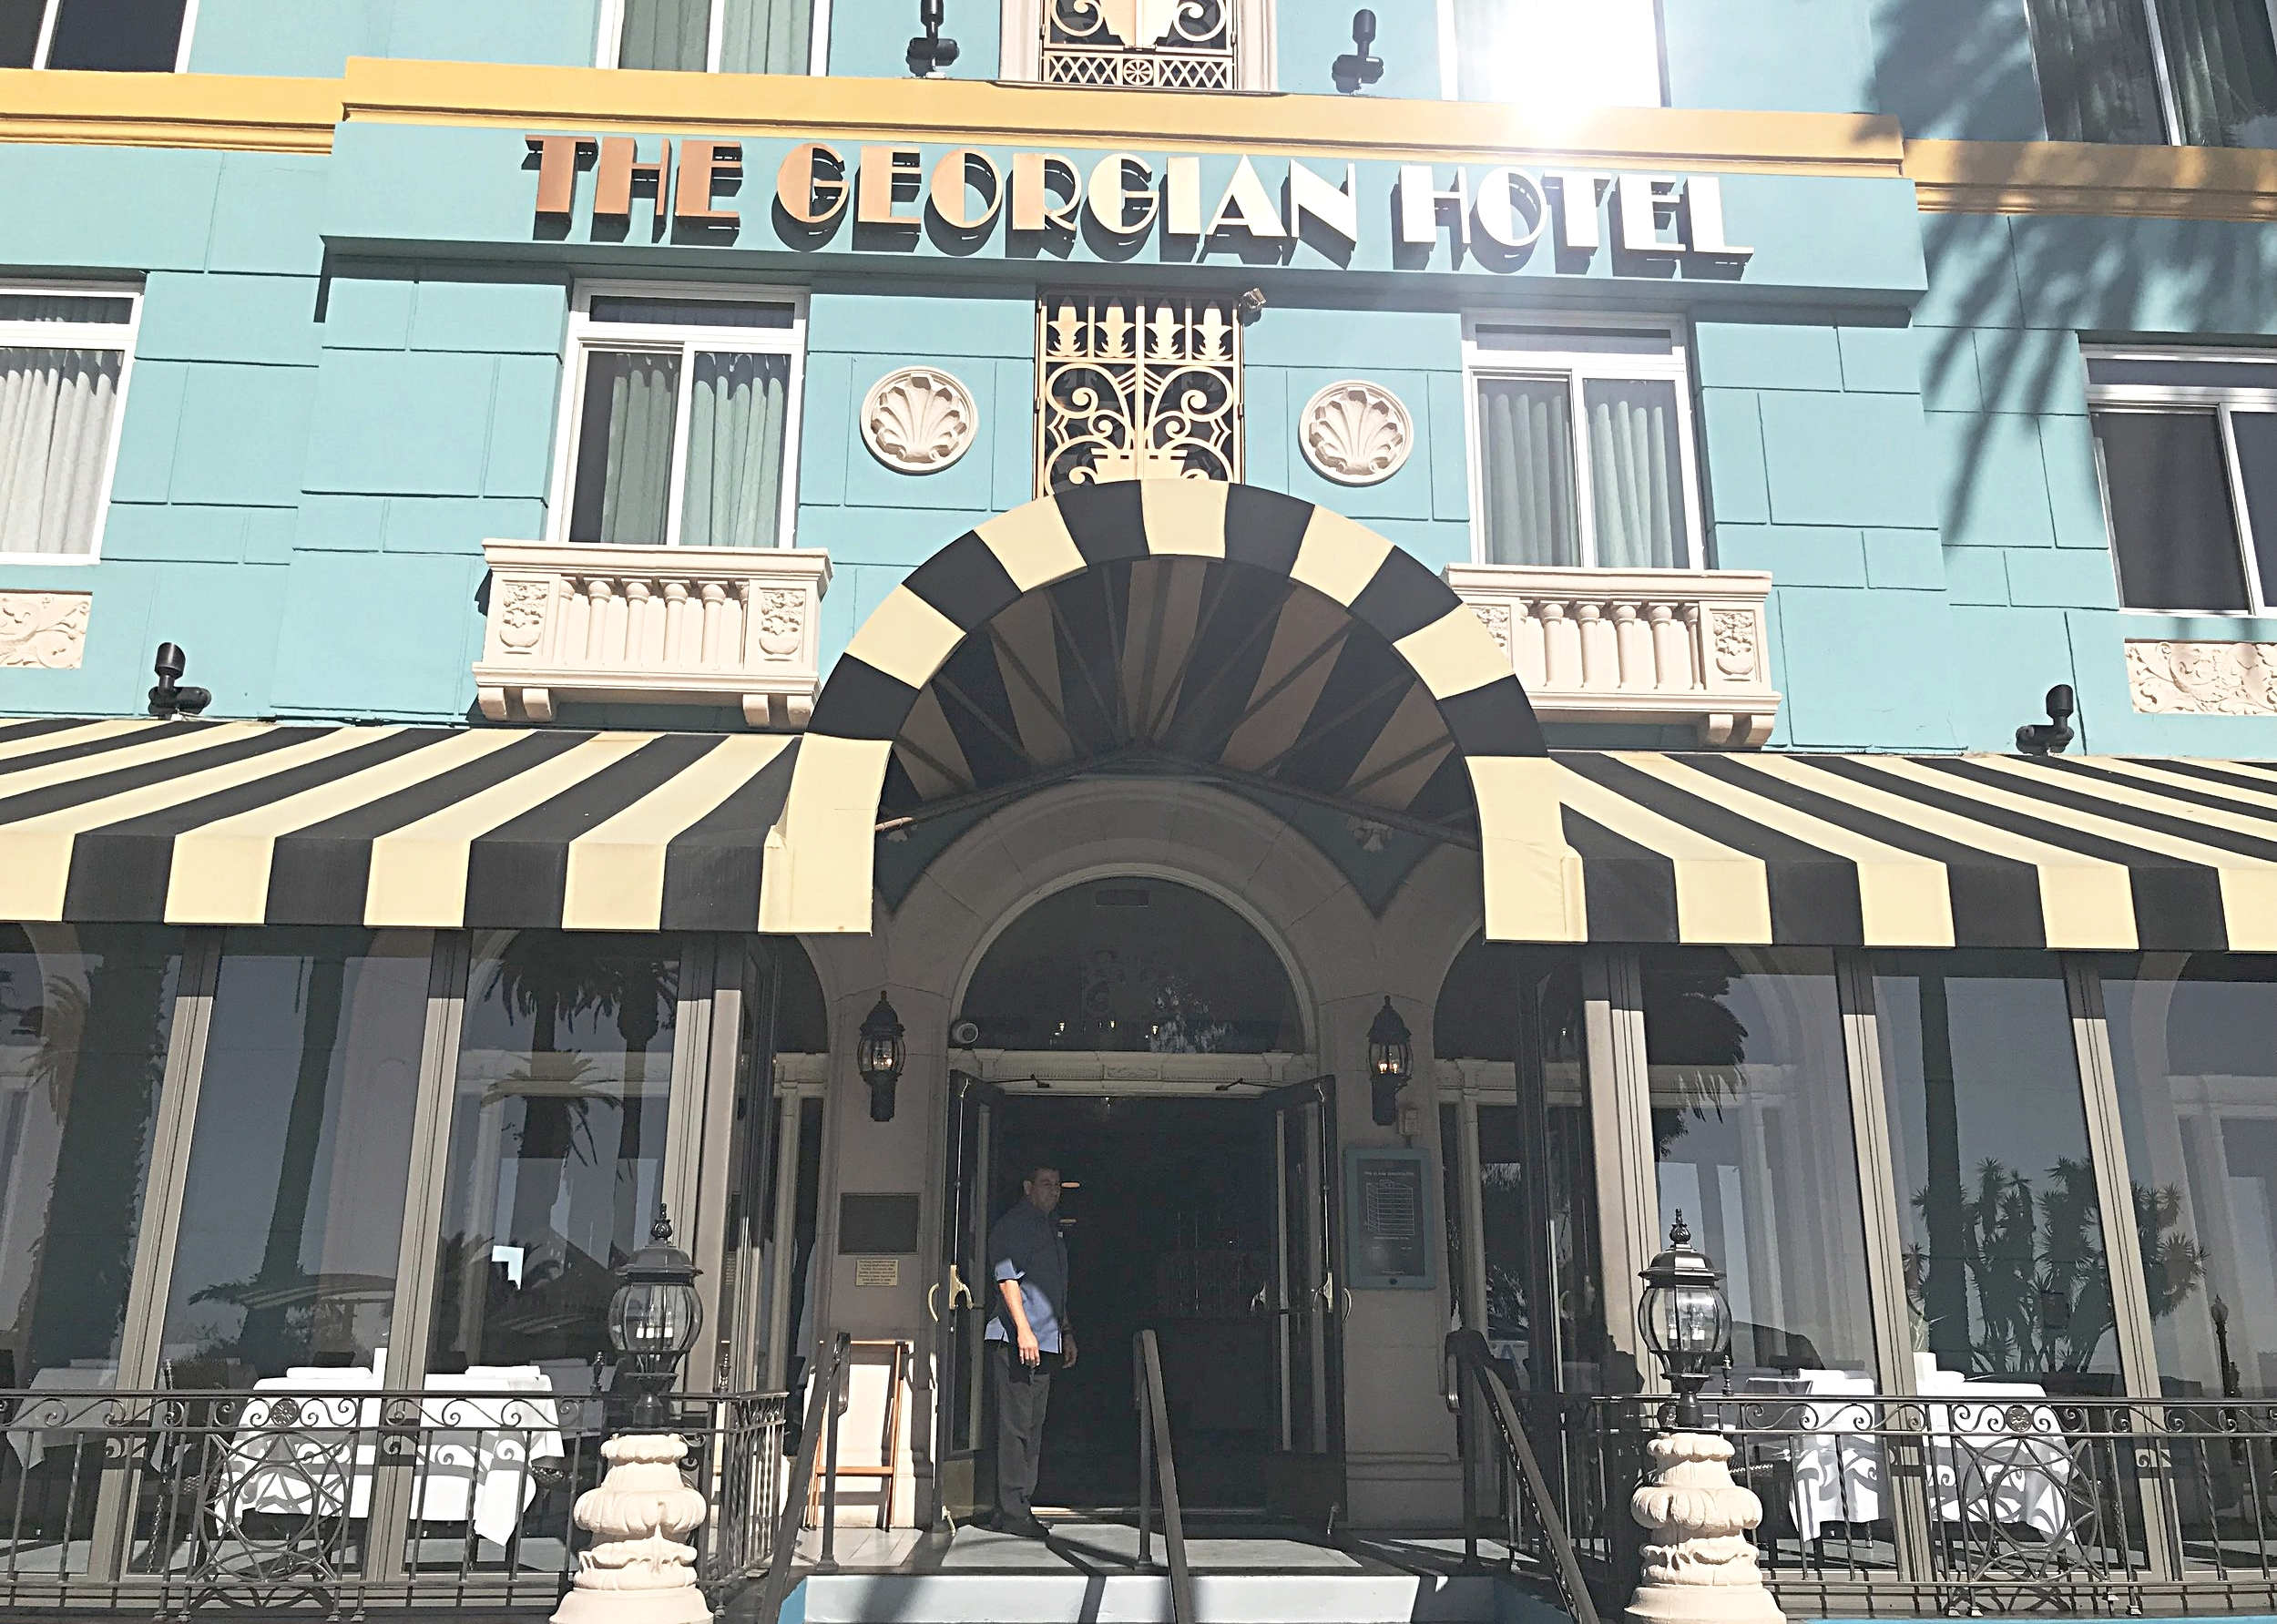 The Georgian, a Boutique hotel with 84 - guest rooms located on Ocean Blvd.